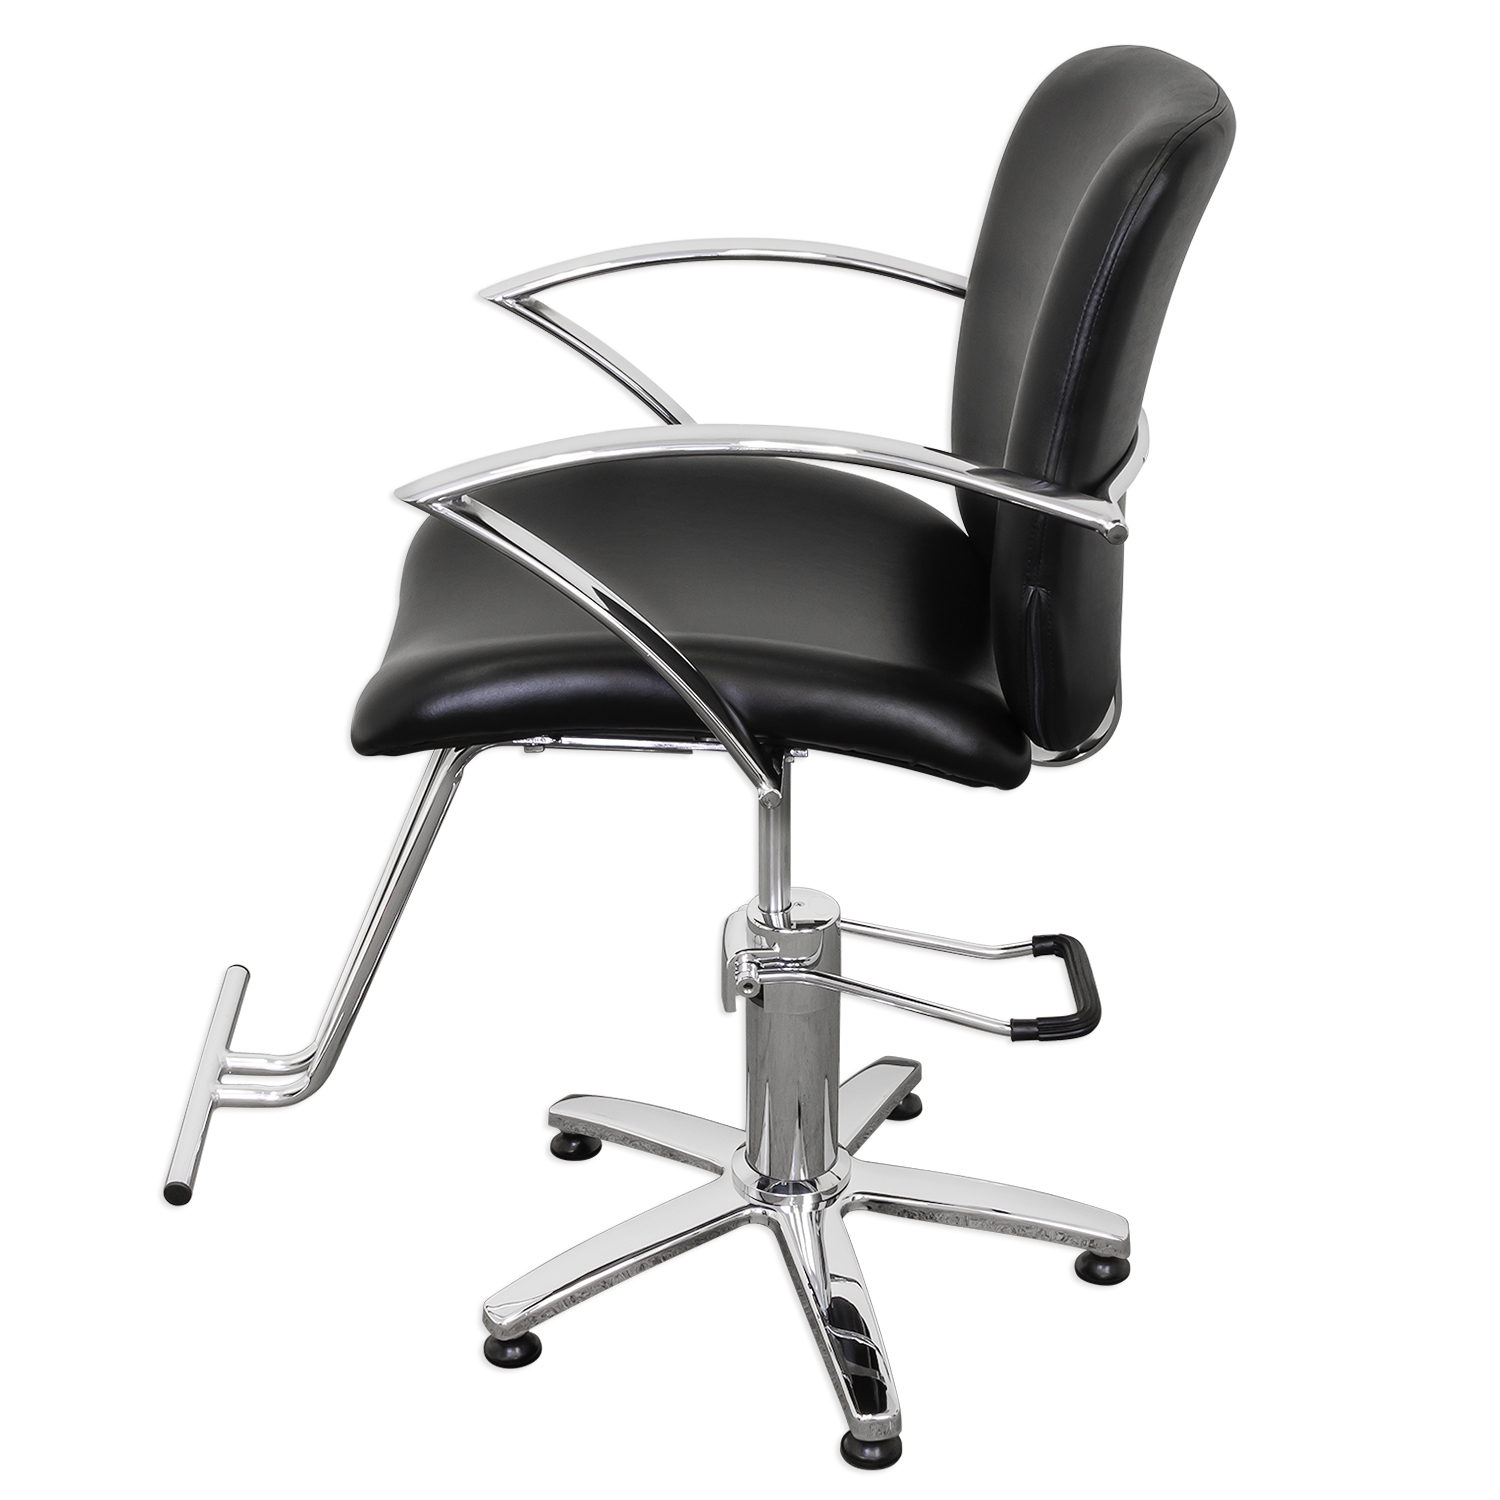 Weston II Styling Chair alternative product image 5